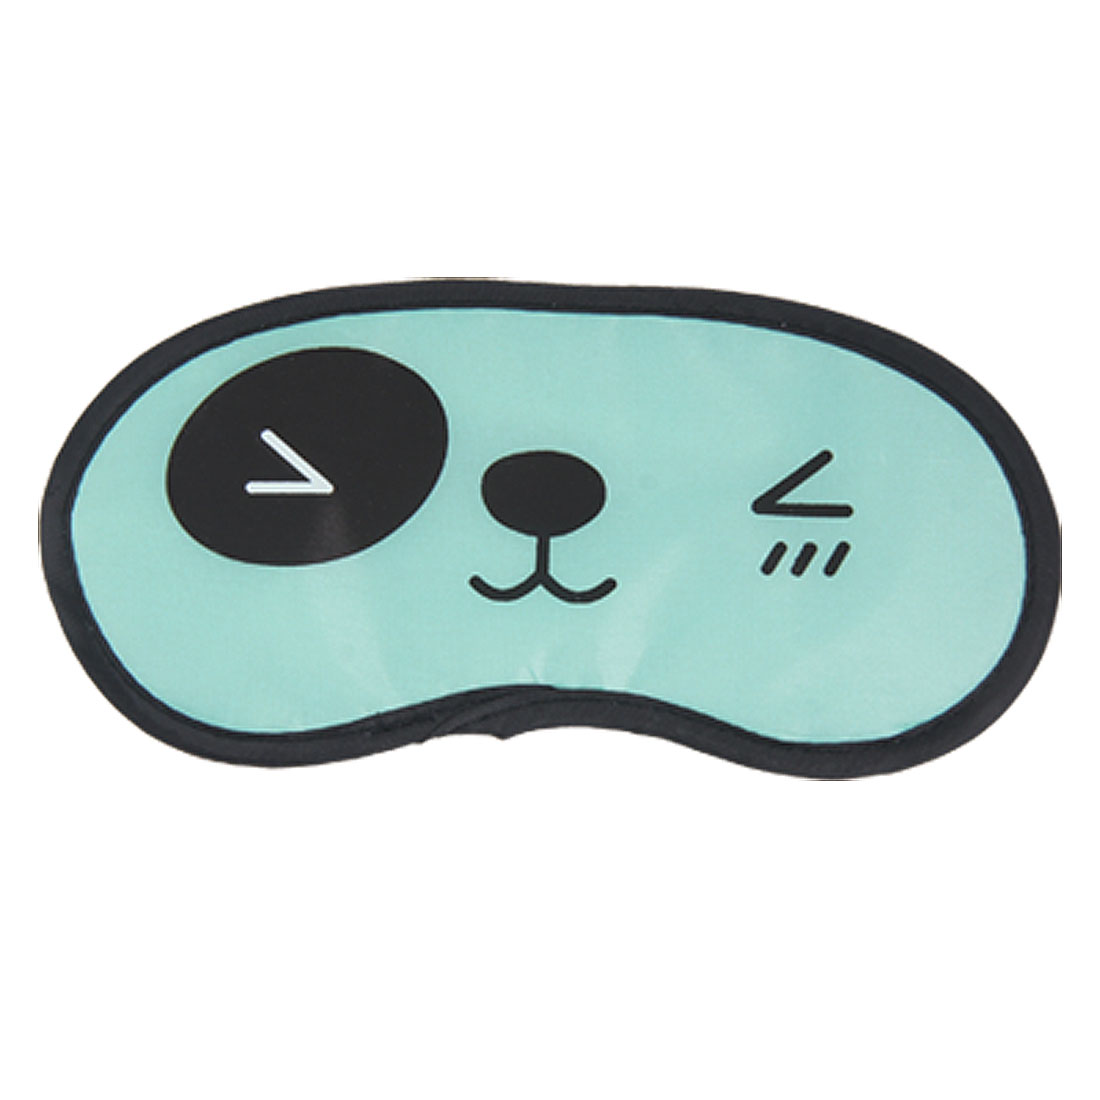 2 Pcs Blue Black Panda Facial Expression Pattern Eye Mask Cover for Travel Relaxation